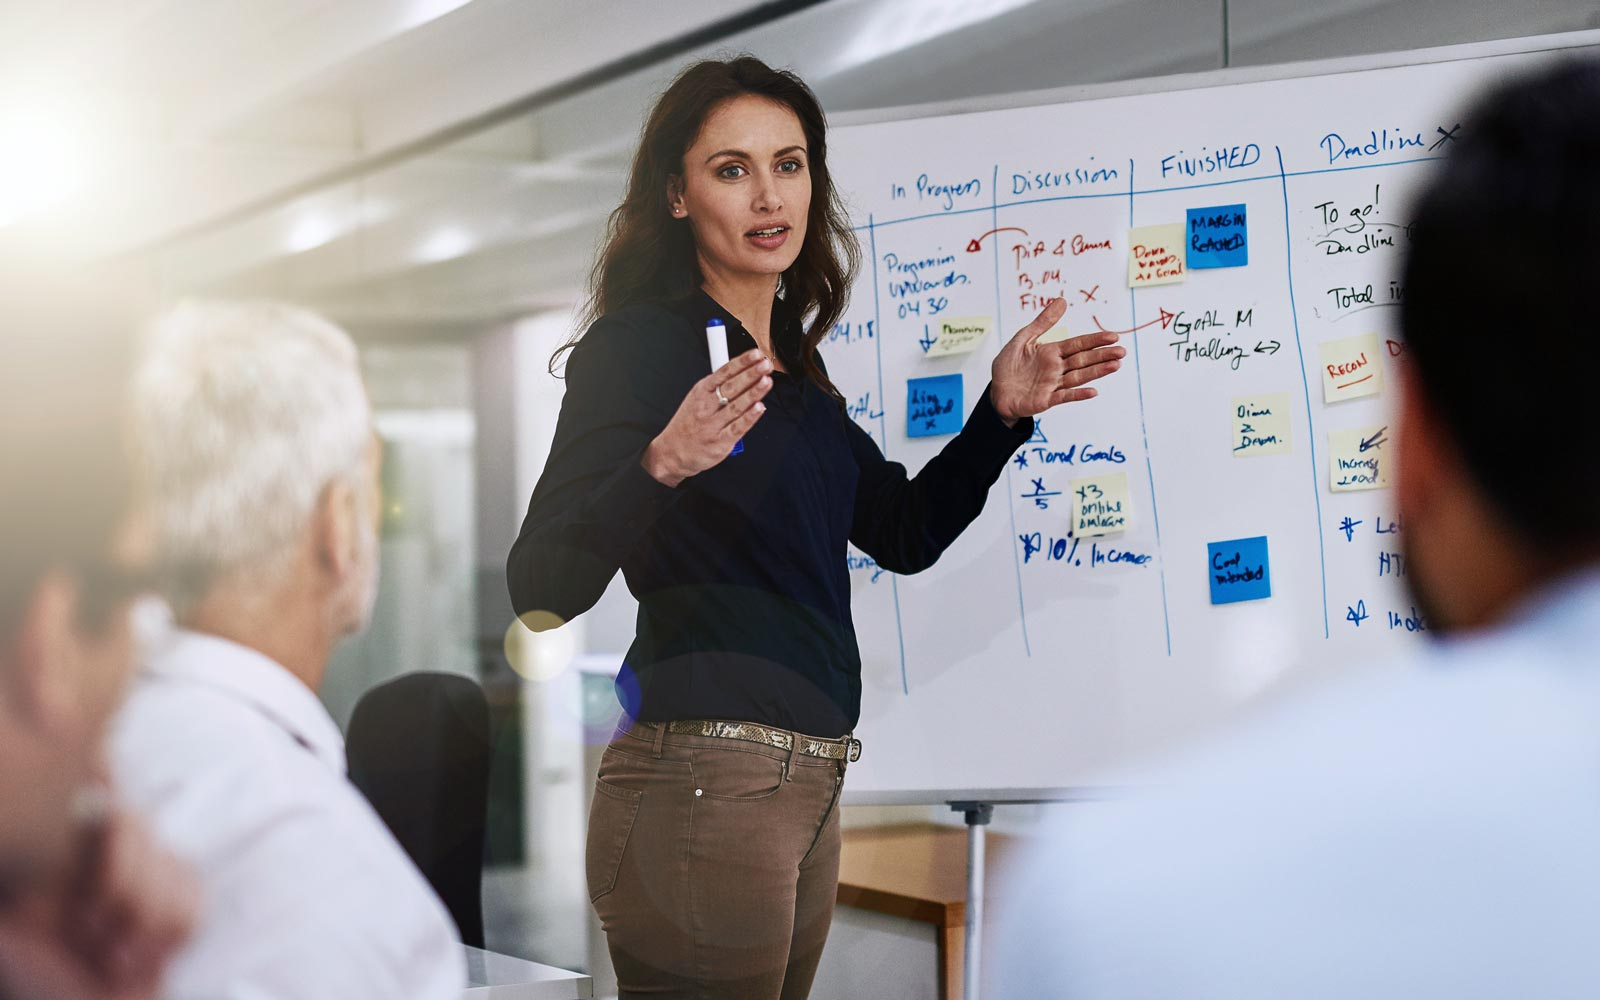 Woman facilitating a meeting, with a whiteboard in the background